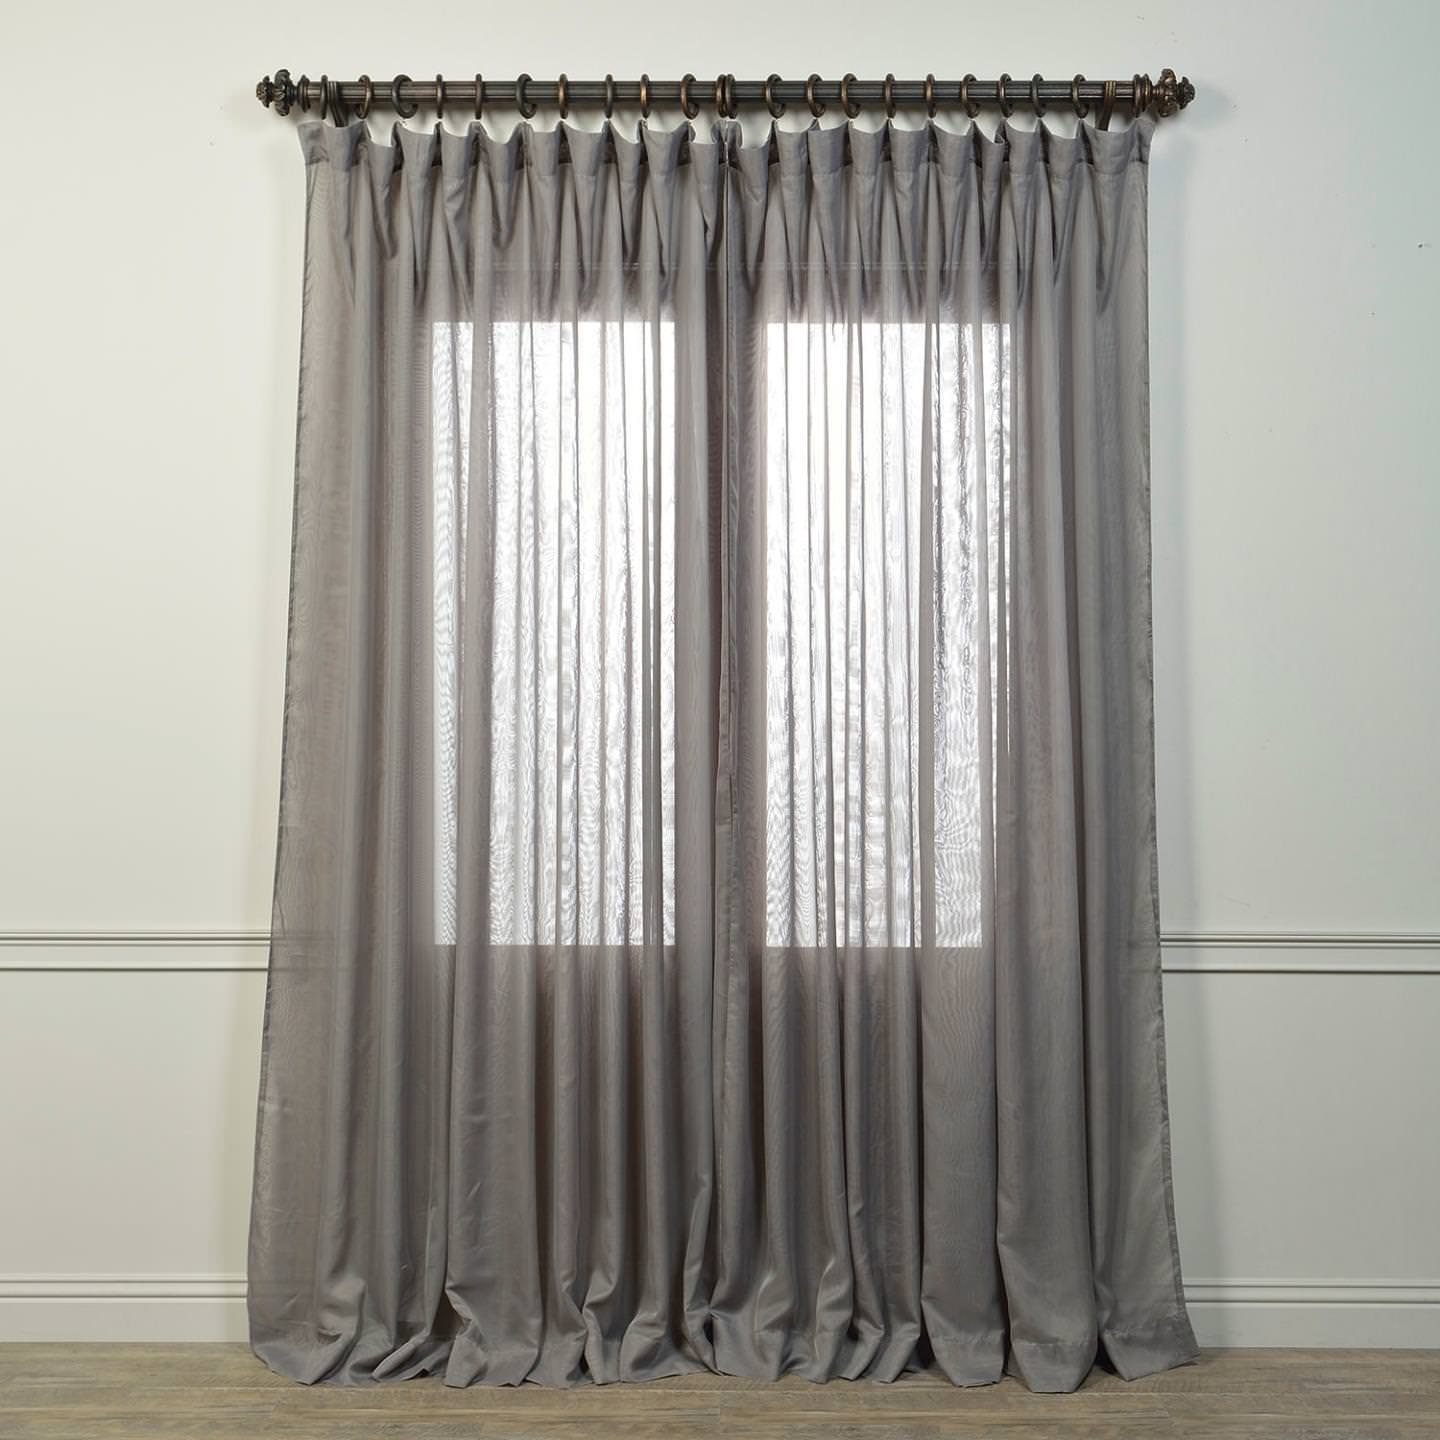 extra panel miraculous org curtains door width wide curtain thermal handballtunisie patio l